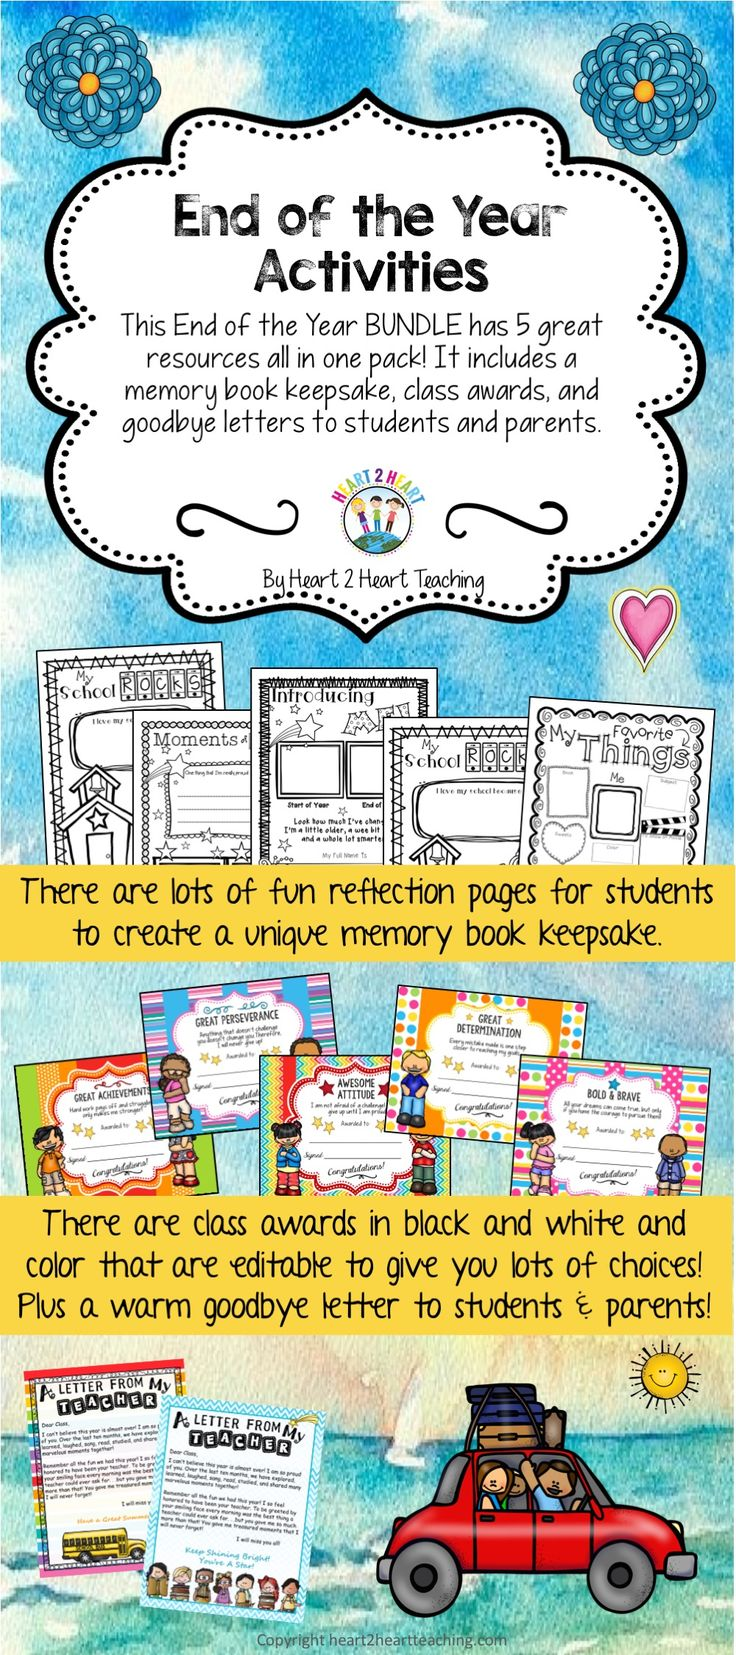 HERE'S WHAT IS INSIDE THE BUNDLE: *End of the Year Memory Book *Growth Mindset Class Awards (Editable) *Character Awards in B/W *End of the Year Letter to Students (Editable) *End of the Year Thank You Letter to Parents